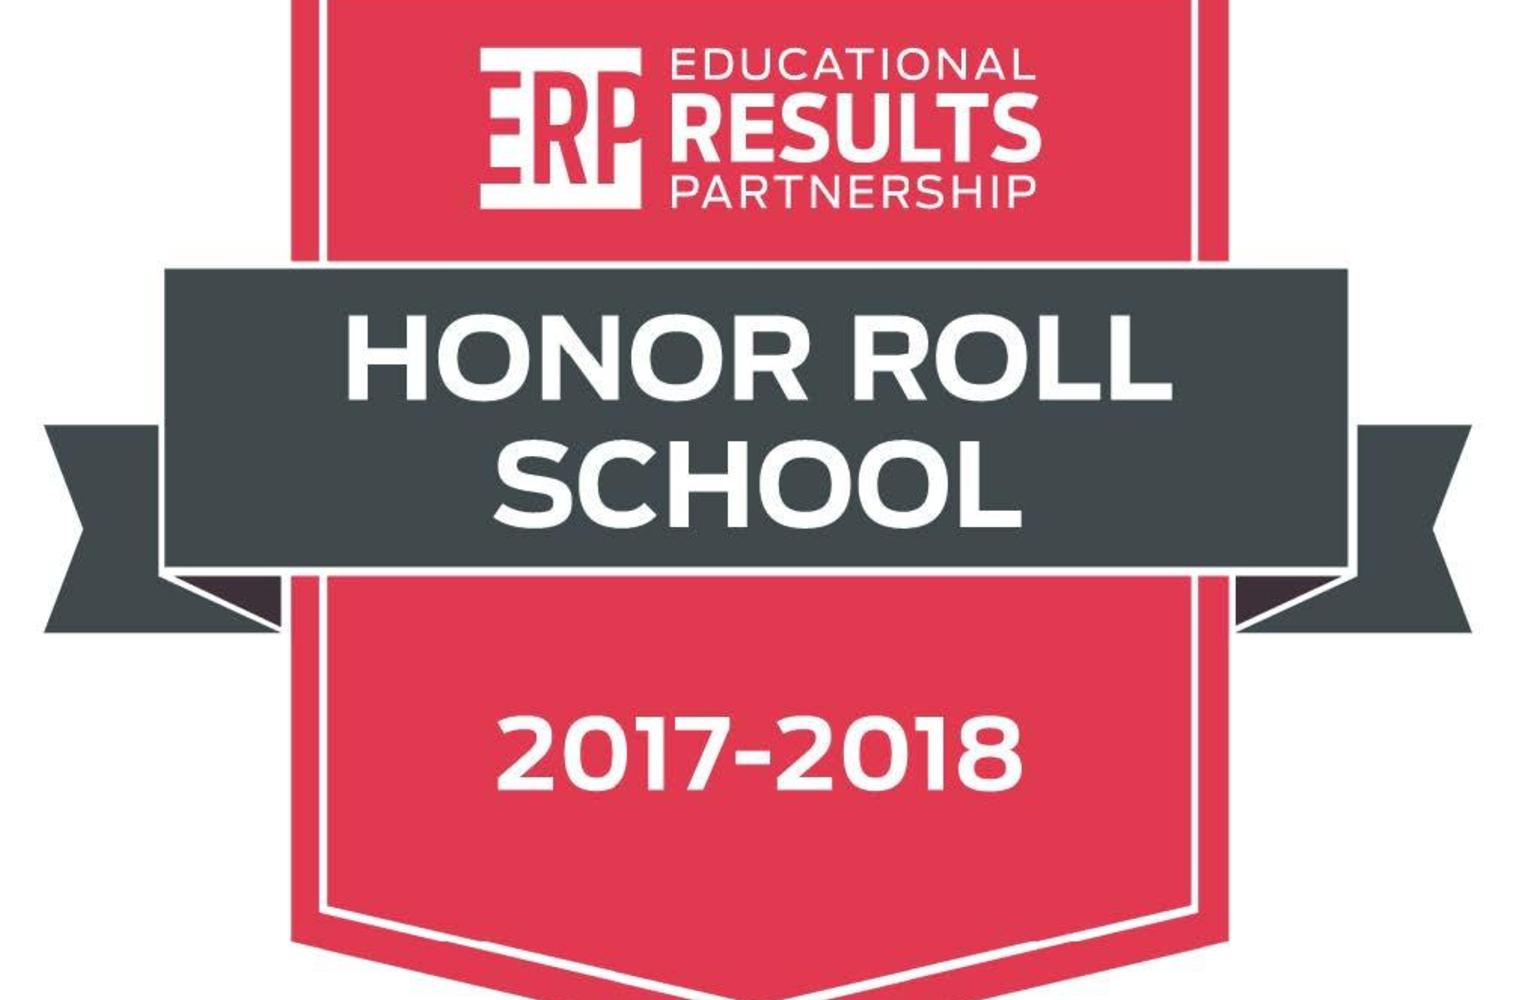 Honor Roll School logo